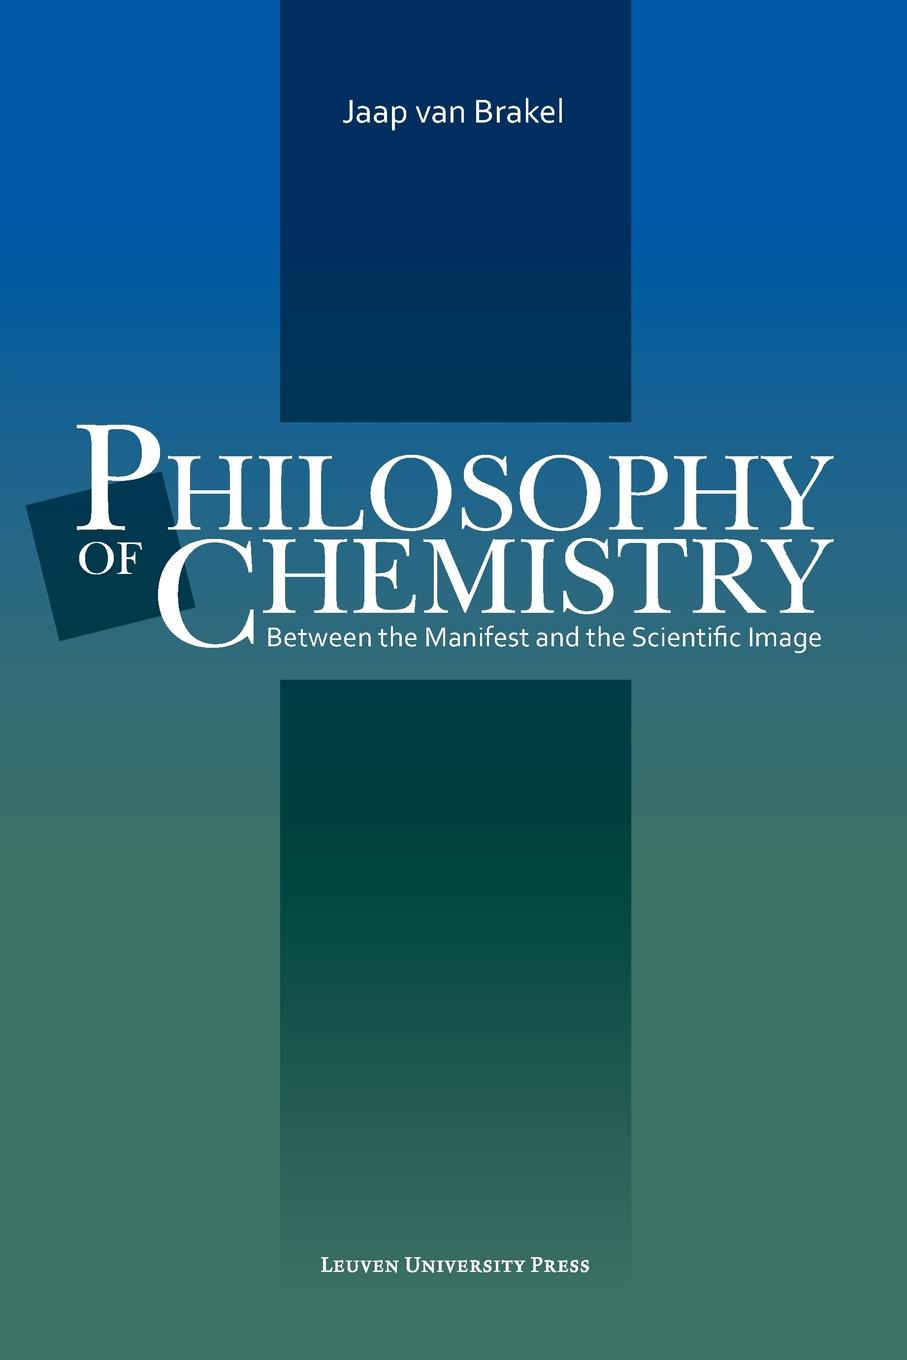 J. Vanbrakel, J. Van Brakel, Jaap van Brakel Philosophy of Chemistry. Between the Manifest and the Scientific Image william brock j the fontana history of chemistry